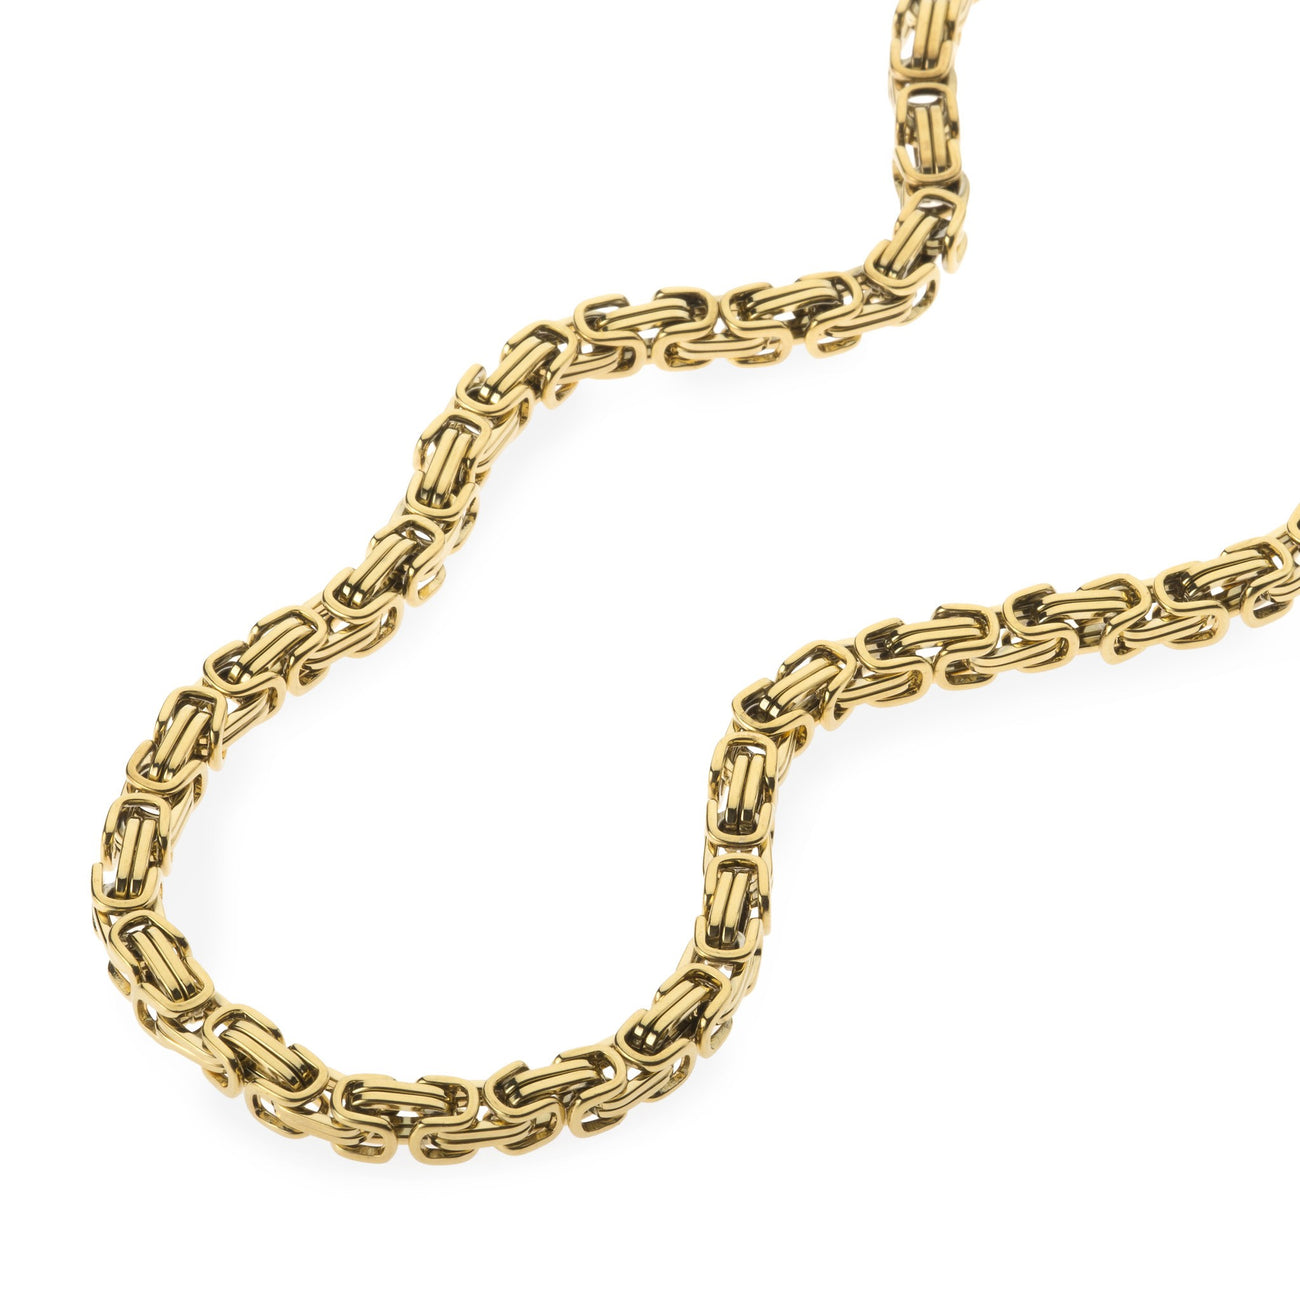 6mm Men's Gold Stainless Steel Byzantine Box Chain , Chains, SpicyIce - 2